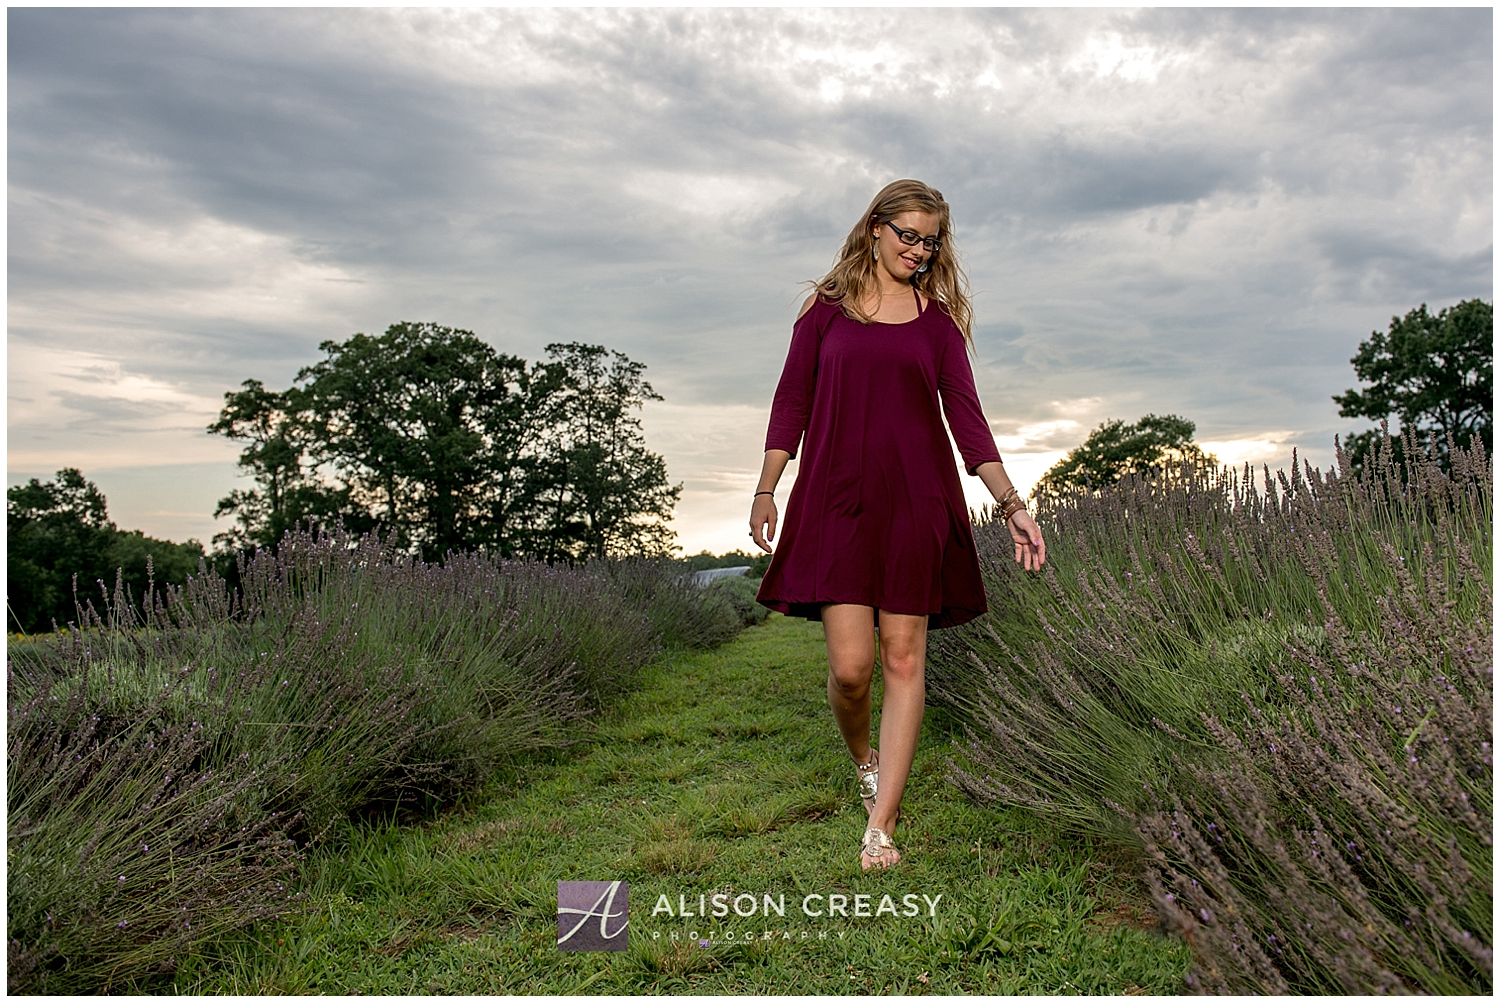 Alison-Creasy-Photography-Lynchburg-VA-Photographer_0720.jpg